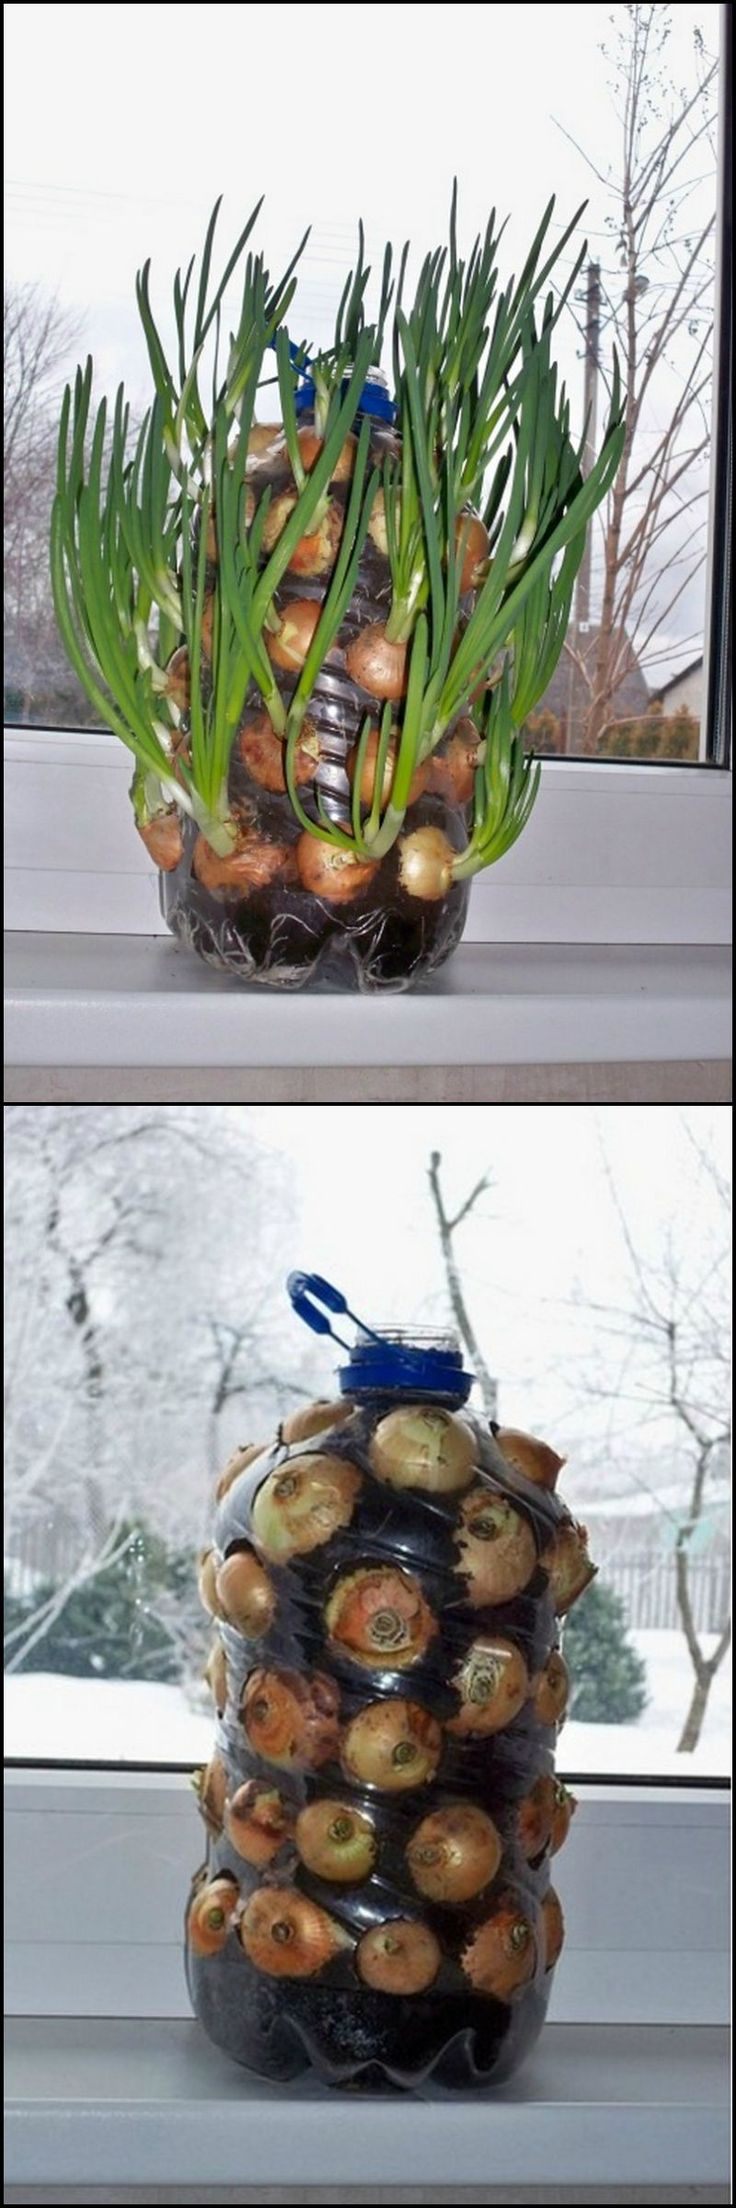 Interior designs medium size vertically growing onions growing onions - How To Make A Vertical Onion Planter From Repurposed Plastic Bottle Http Theownerbuildernetwork Co 1qr9 Onions Are A Super Food And Growing Them Can Be